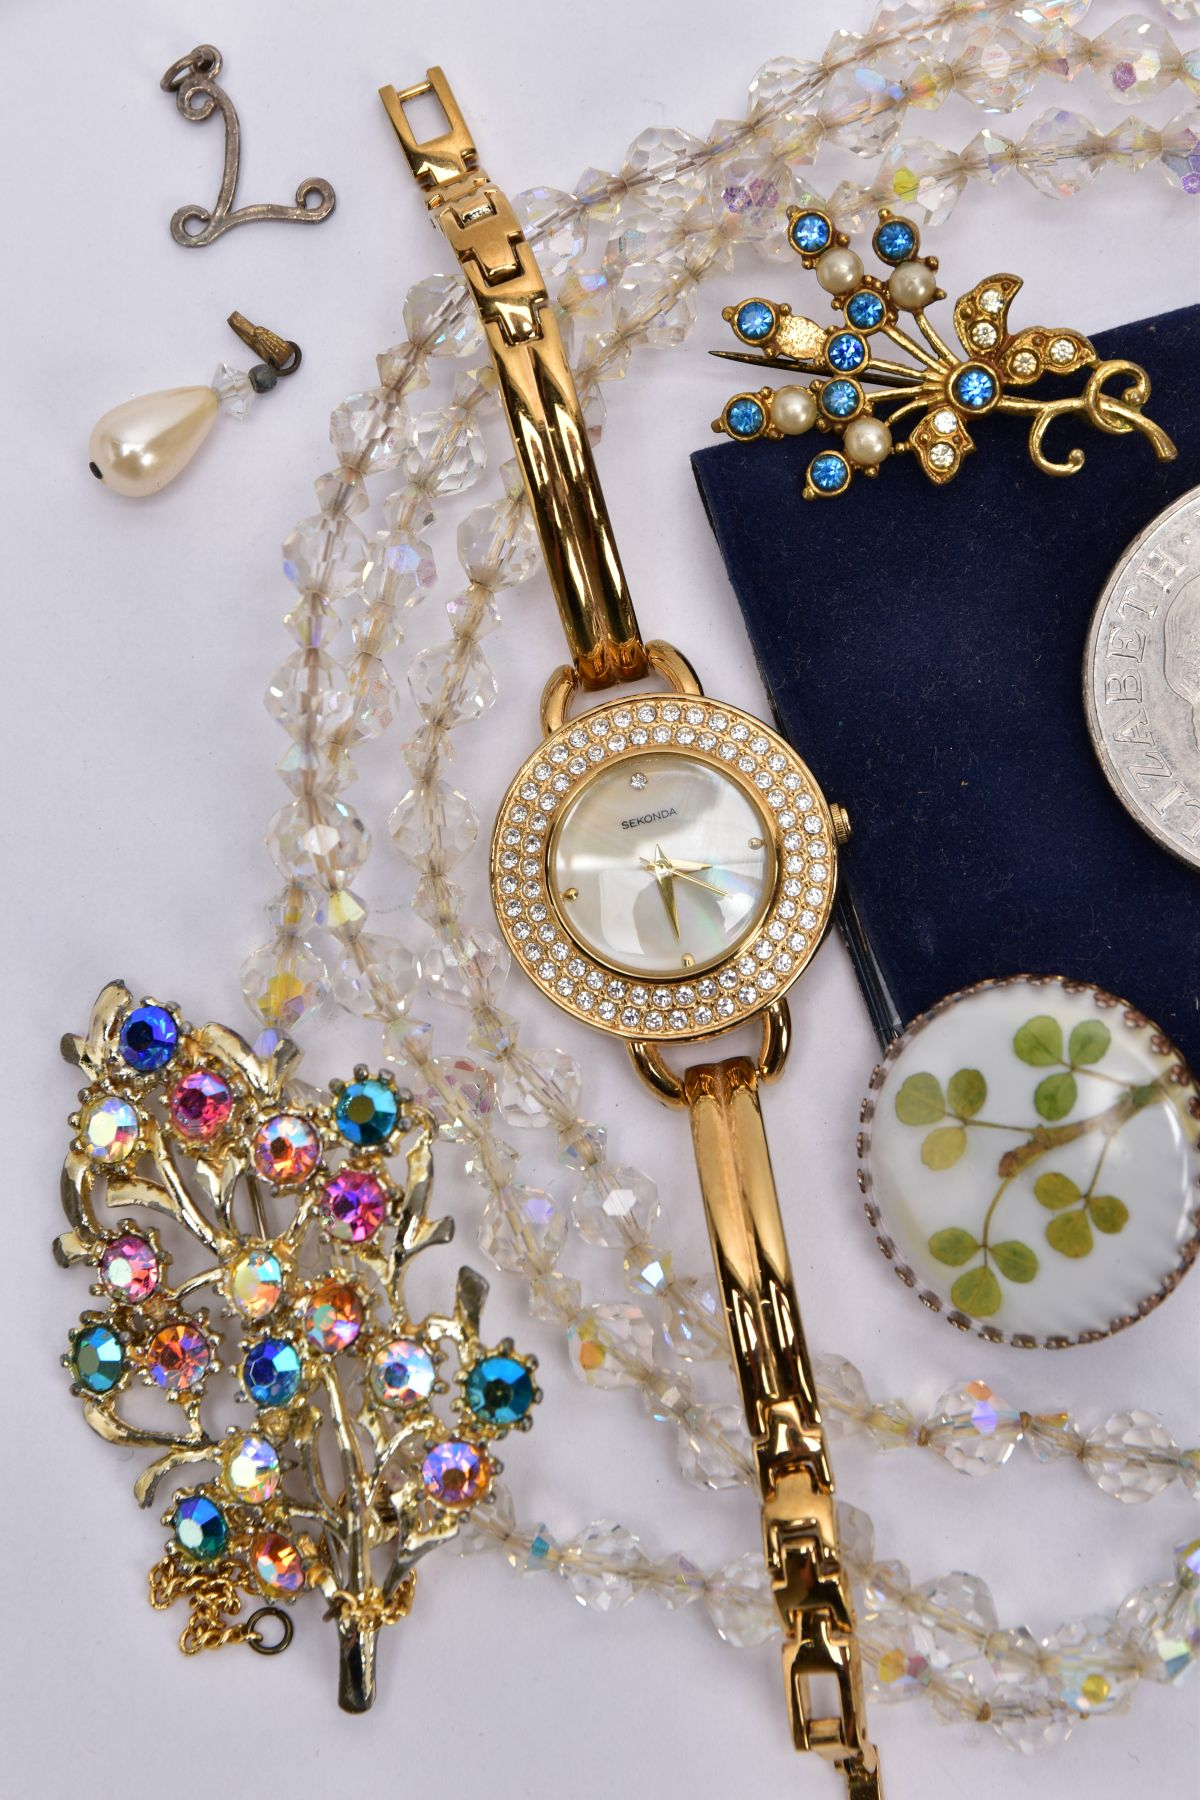 A BAG OF ASSORTED JEWELLERY, to include a ladies 'Sekonda' wristwatch, round mother of pearl dial, - Image 2 of 3